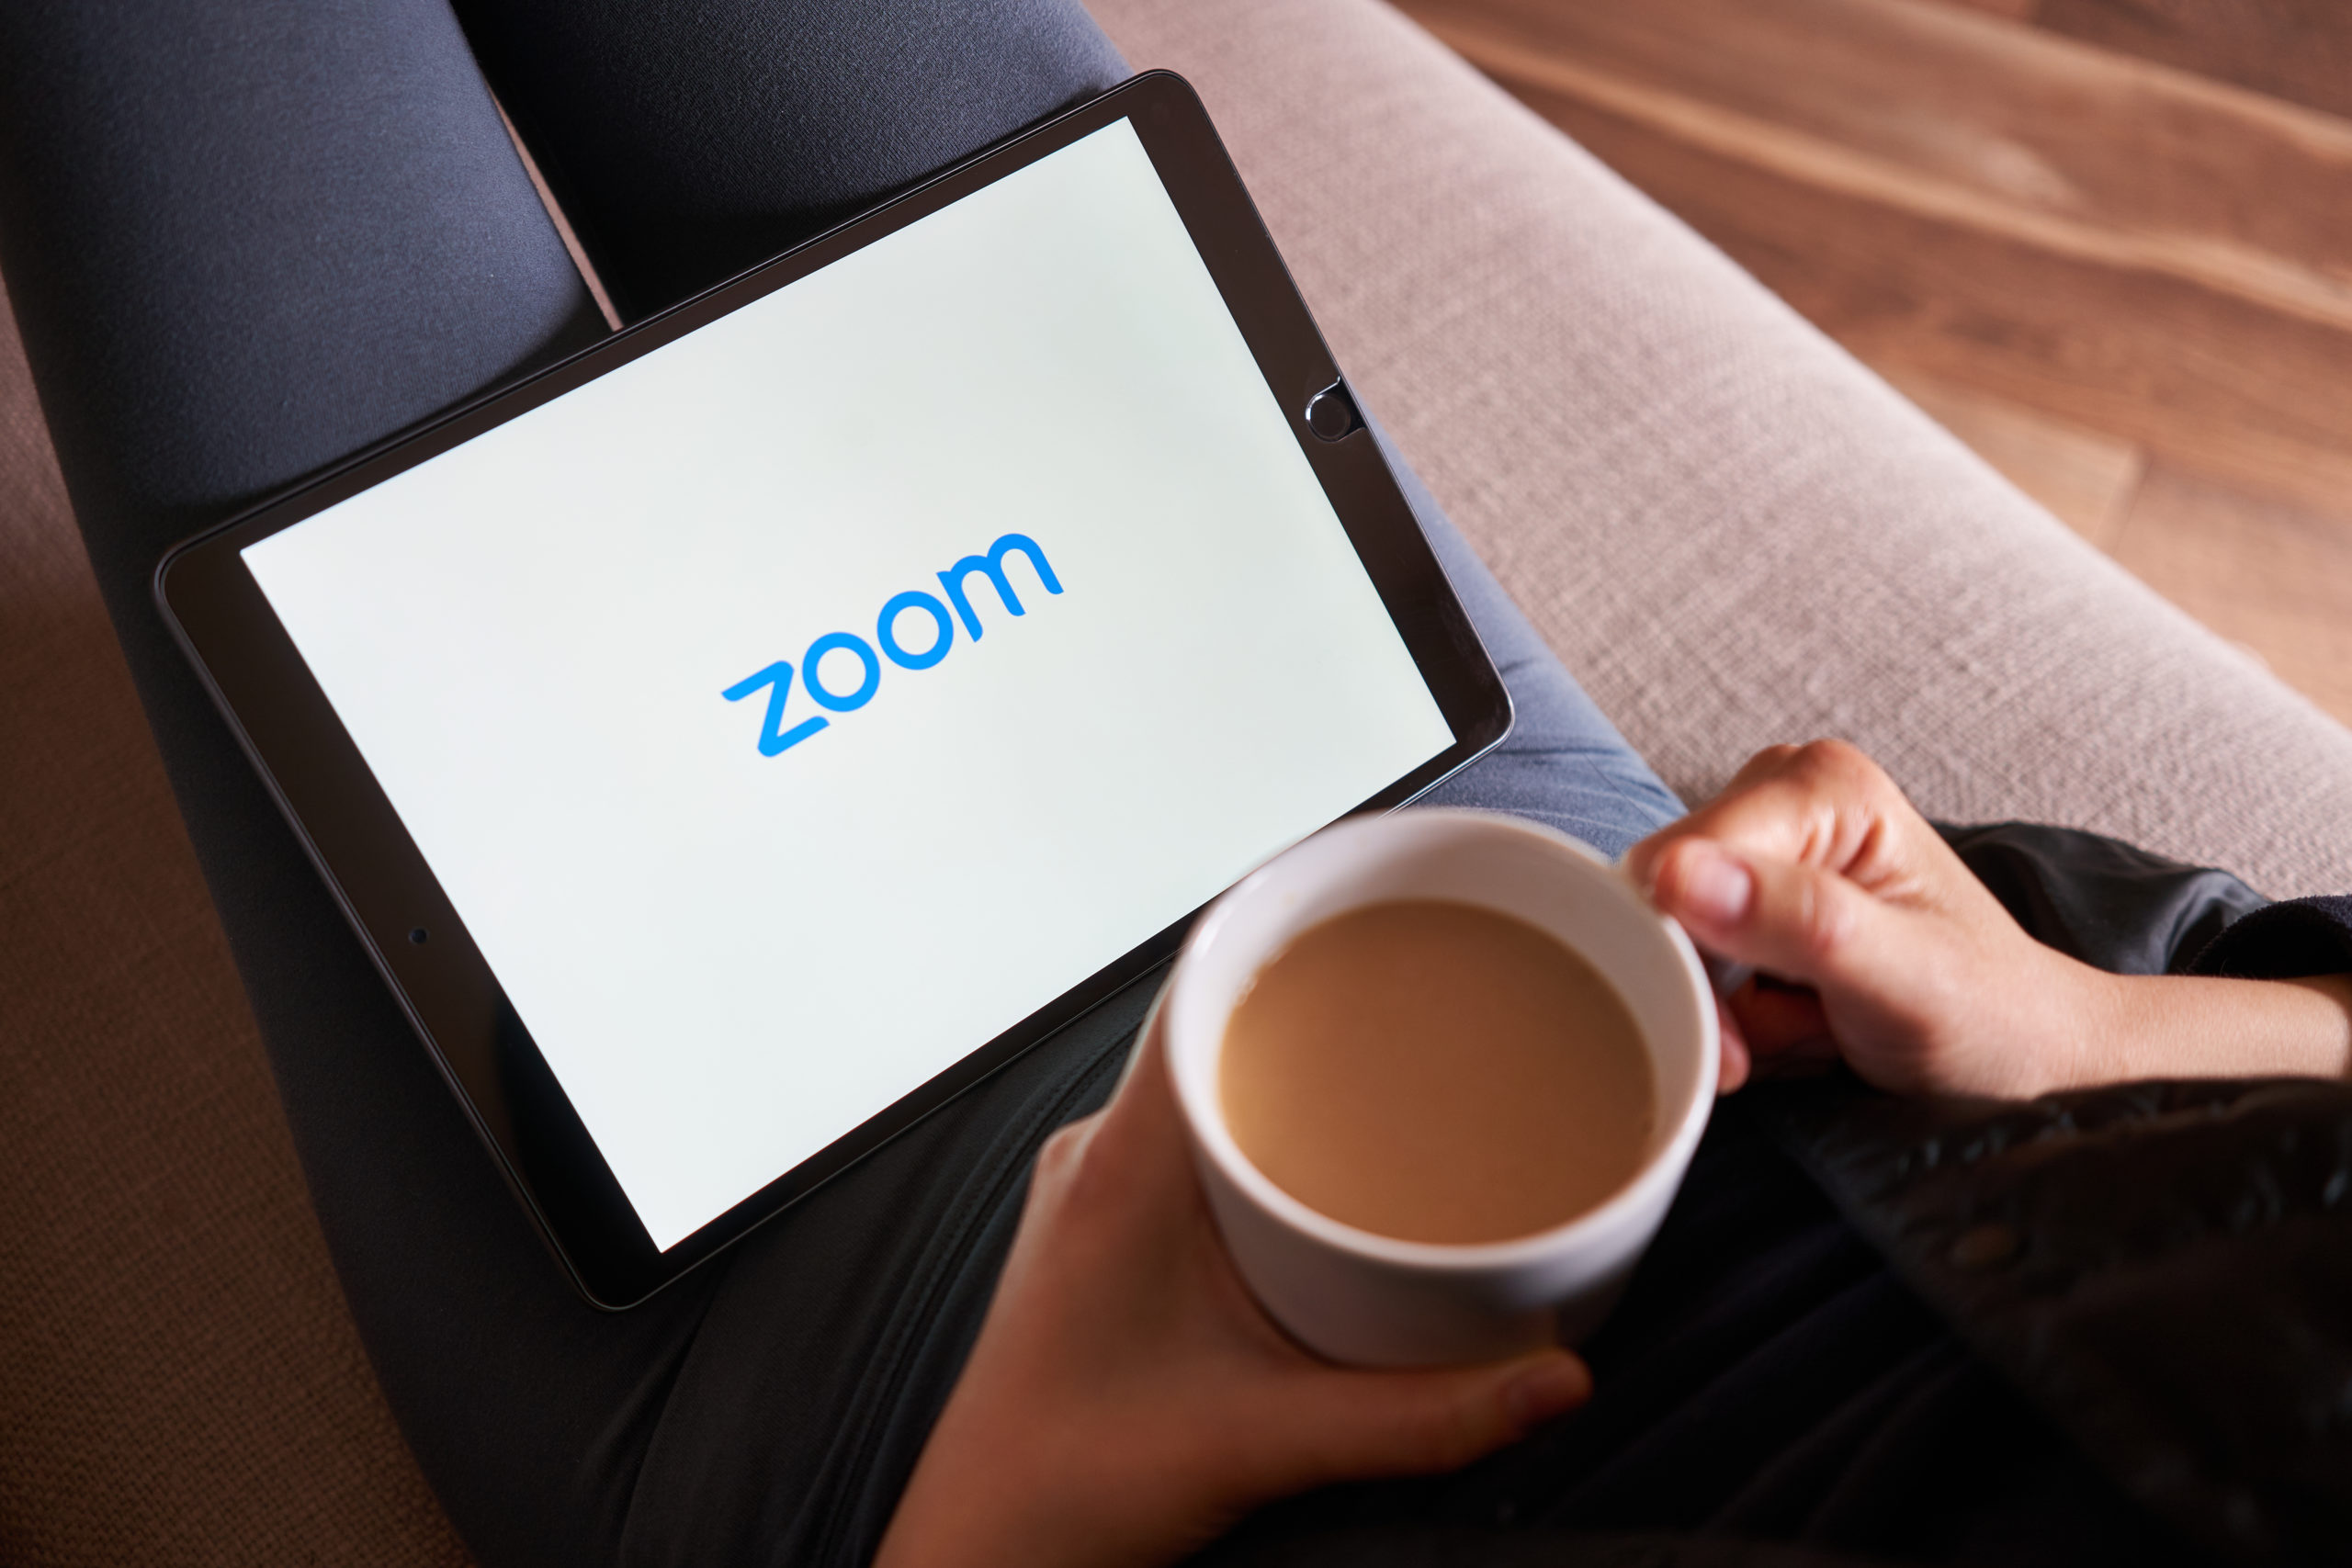 Zoom Temporarily Lifts Its 40-Minute Meeting Limit in Time for the Holidays